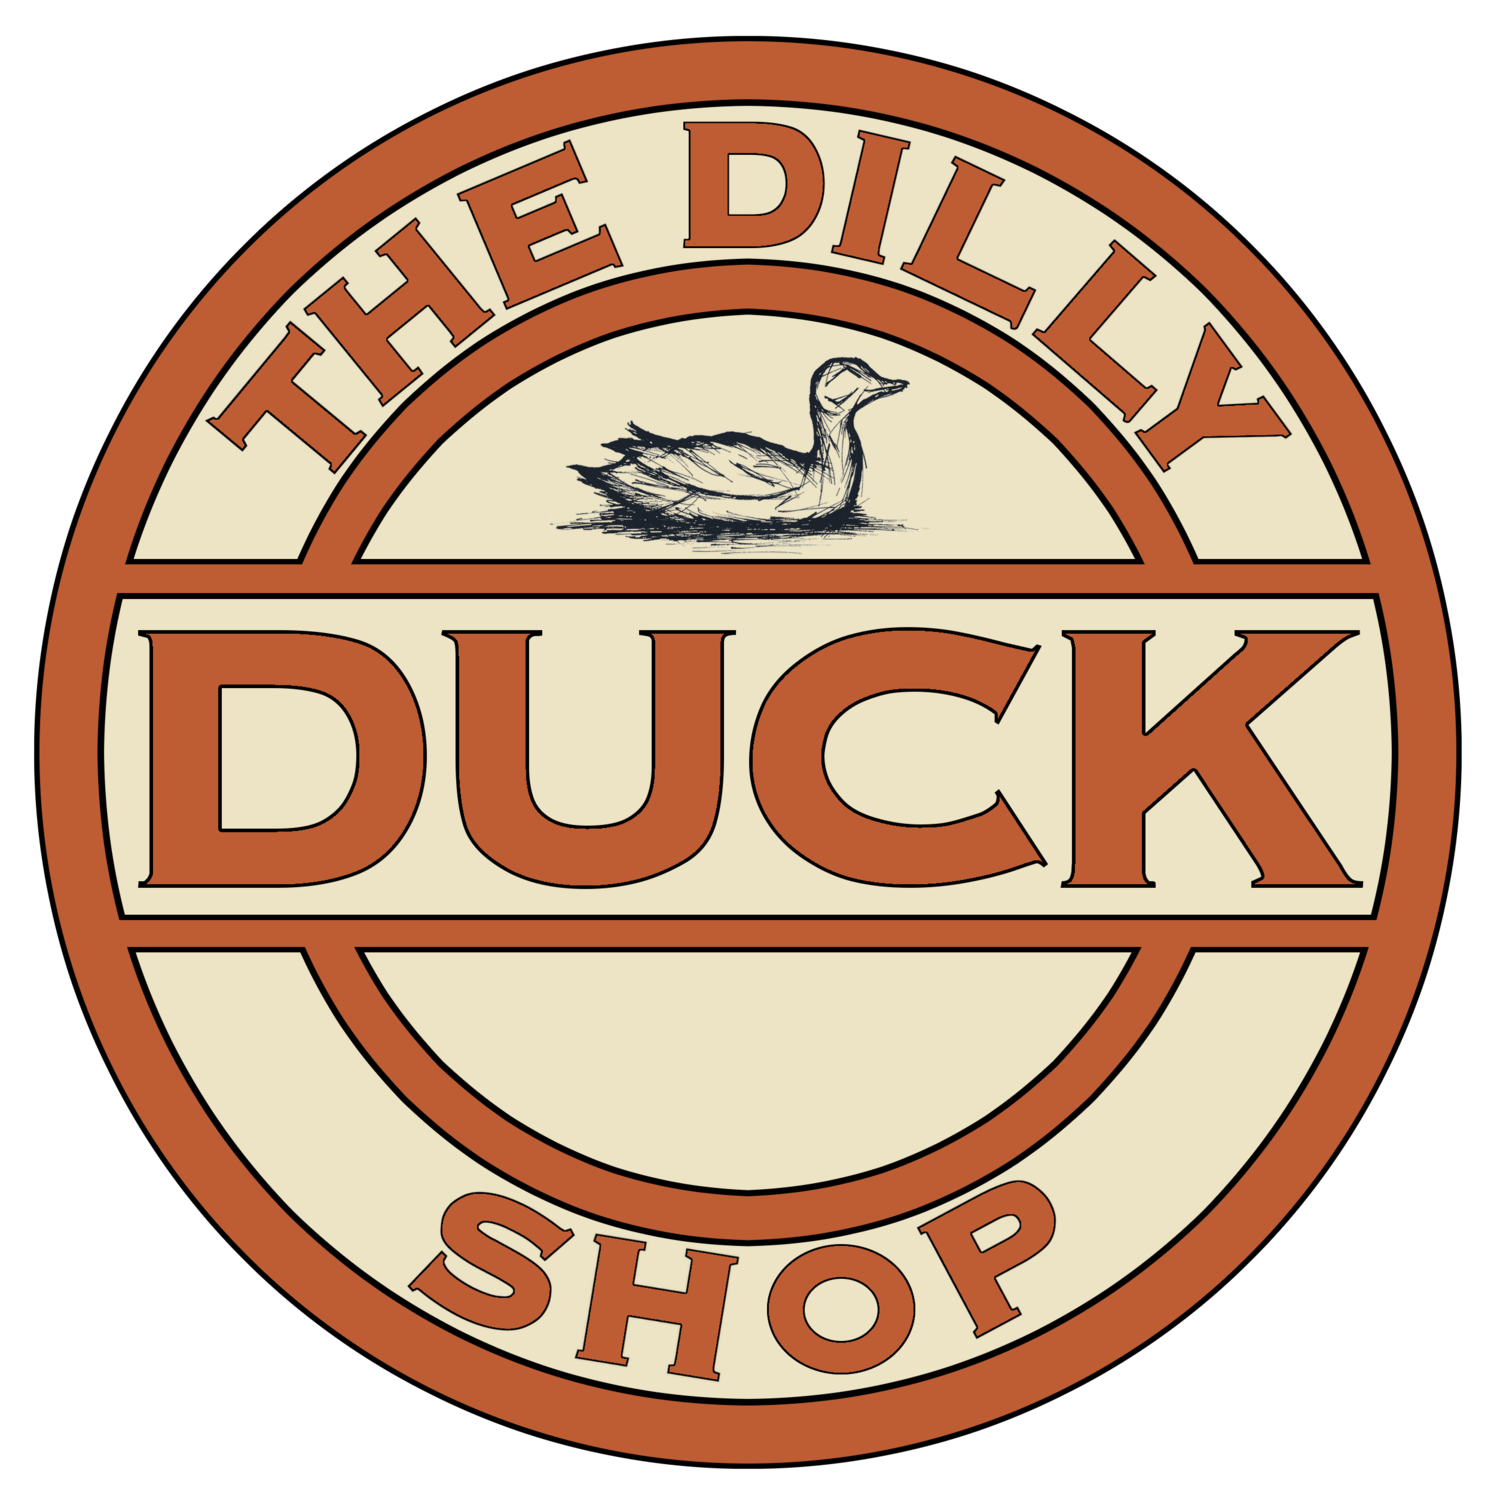 The Dilly Duck Shop